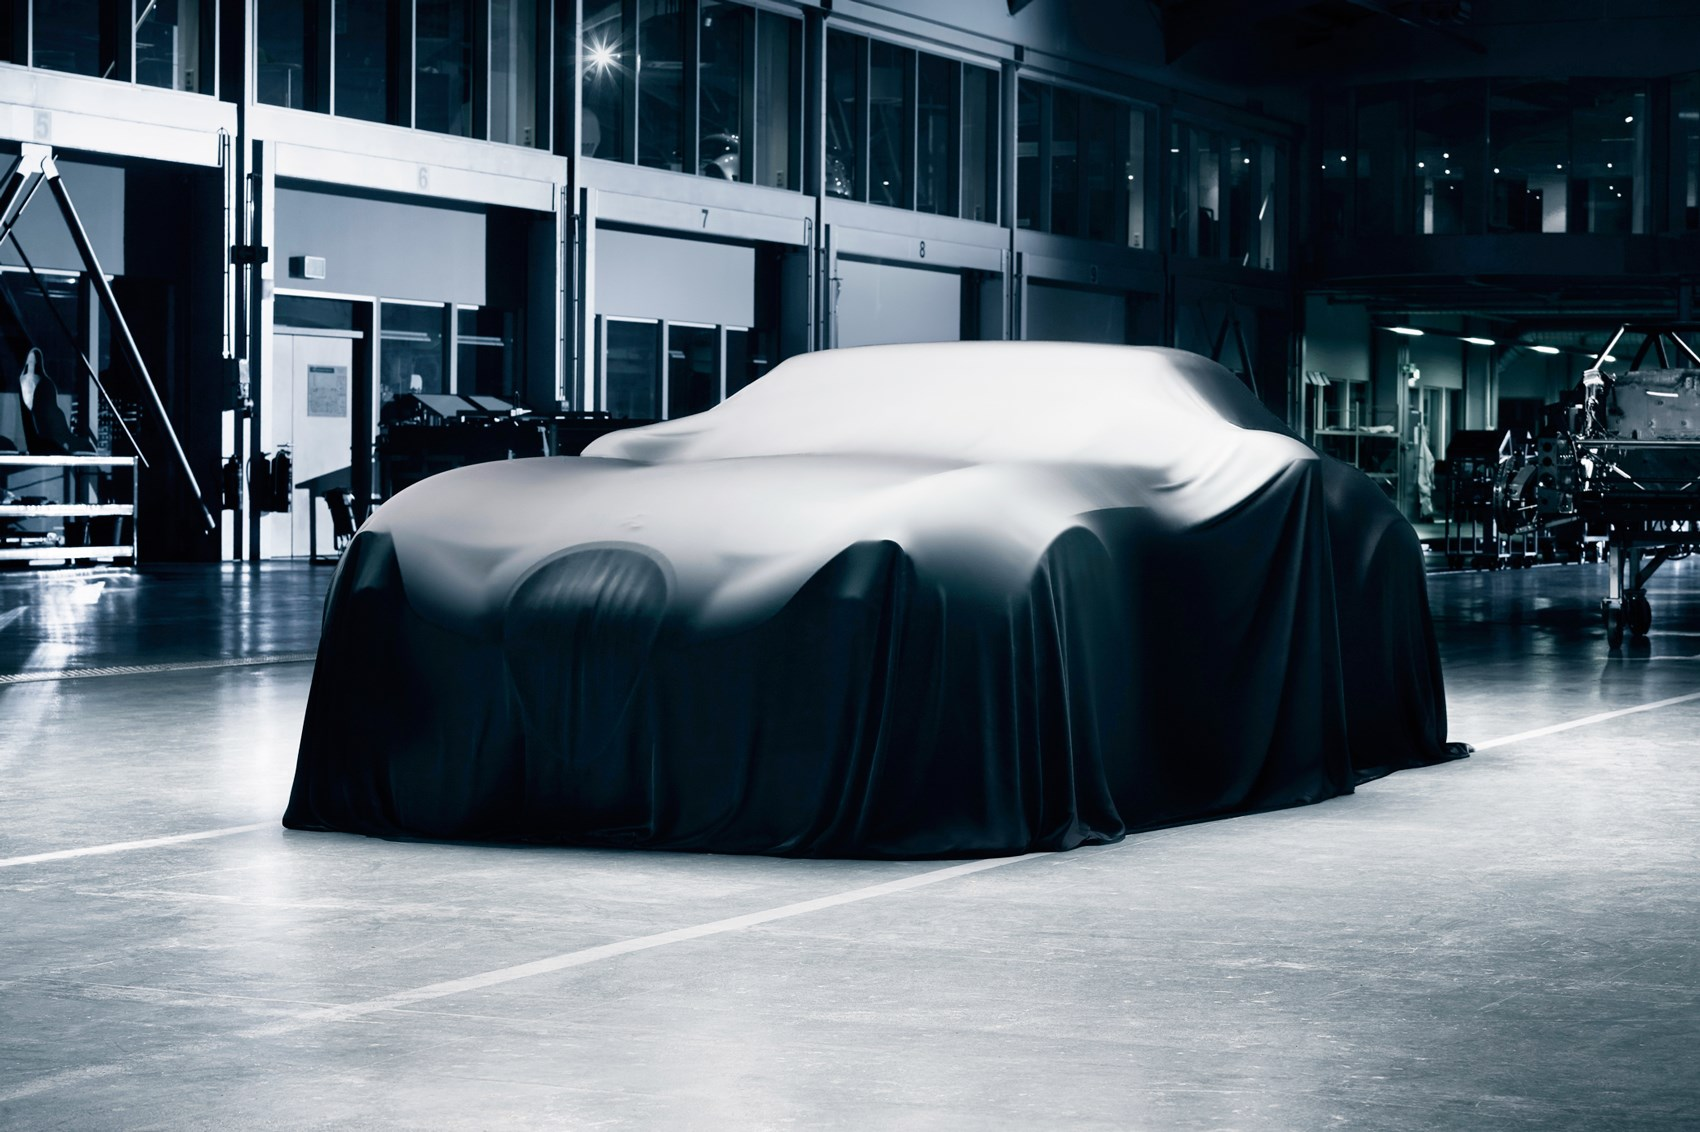 The newest sports car from the German niche automaker Wiesmann should have been revealed at the Frankfurt Motor Show, but the company limited itself to another portion of teaser pics.